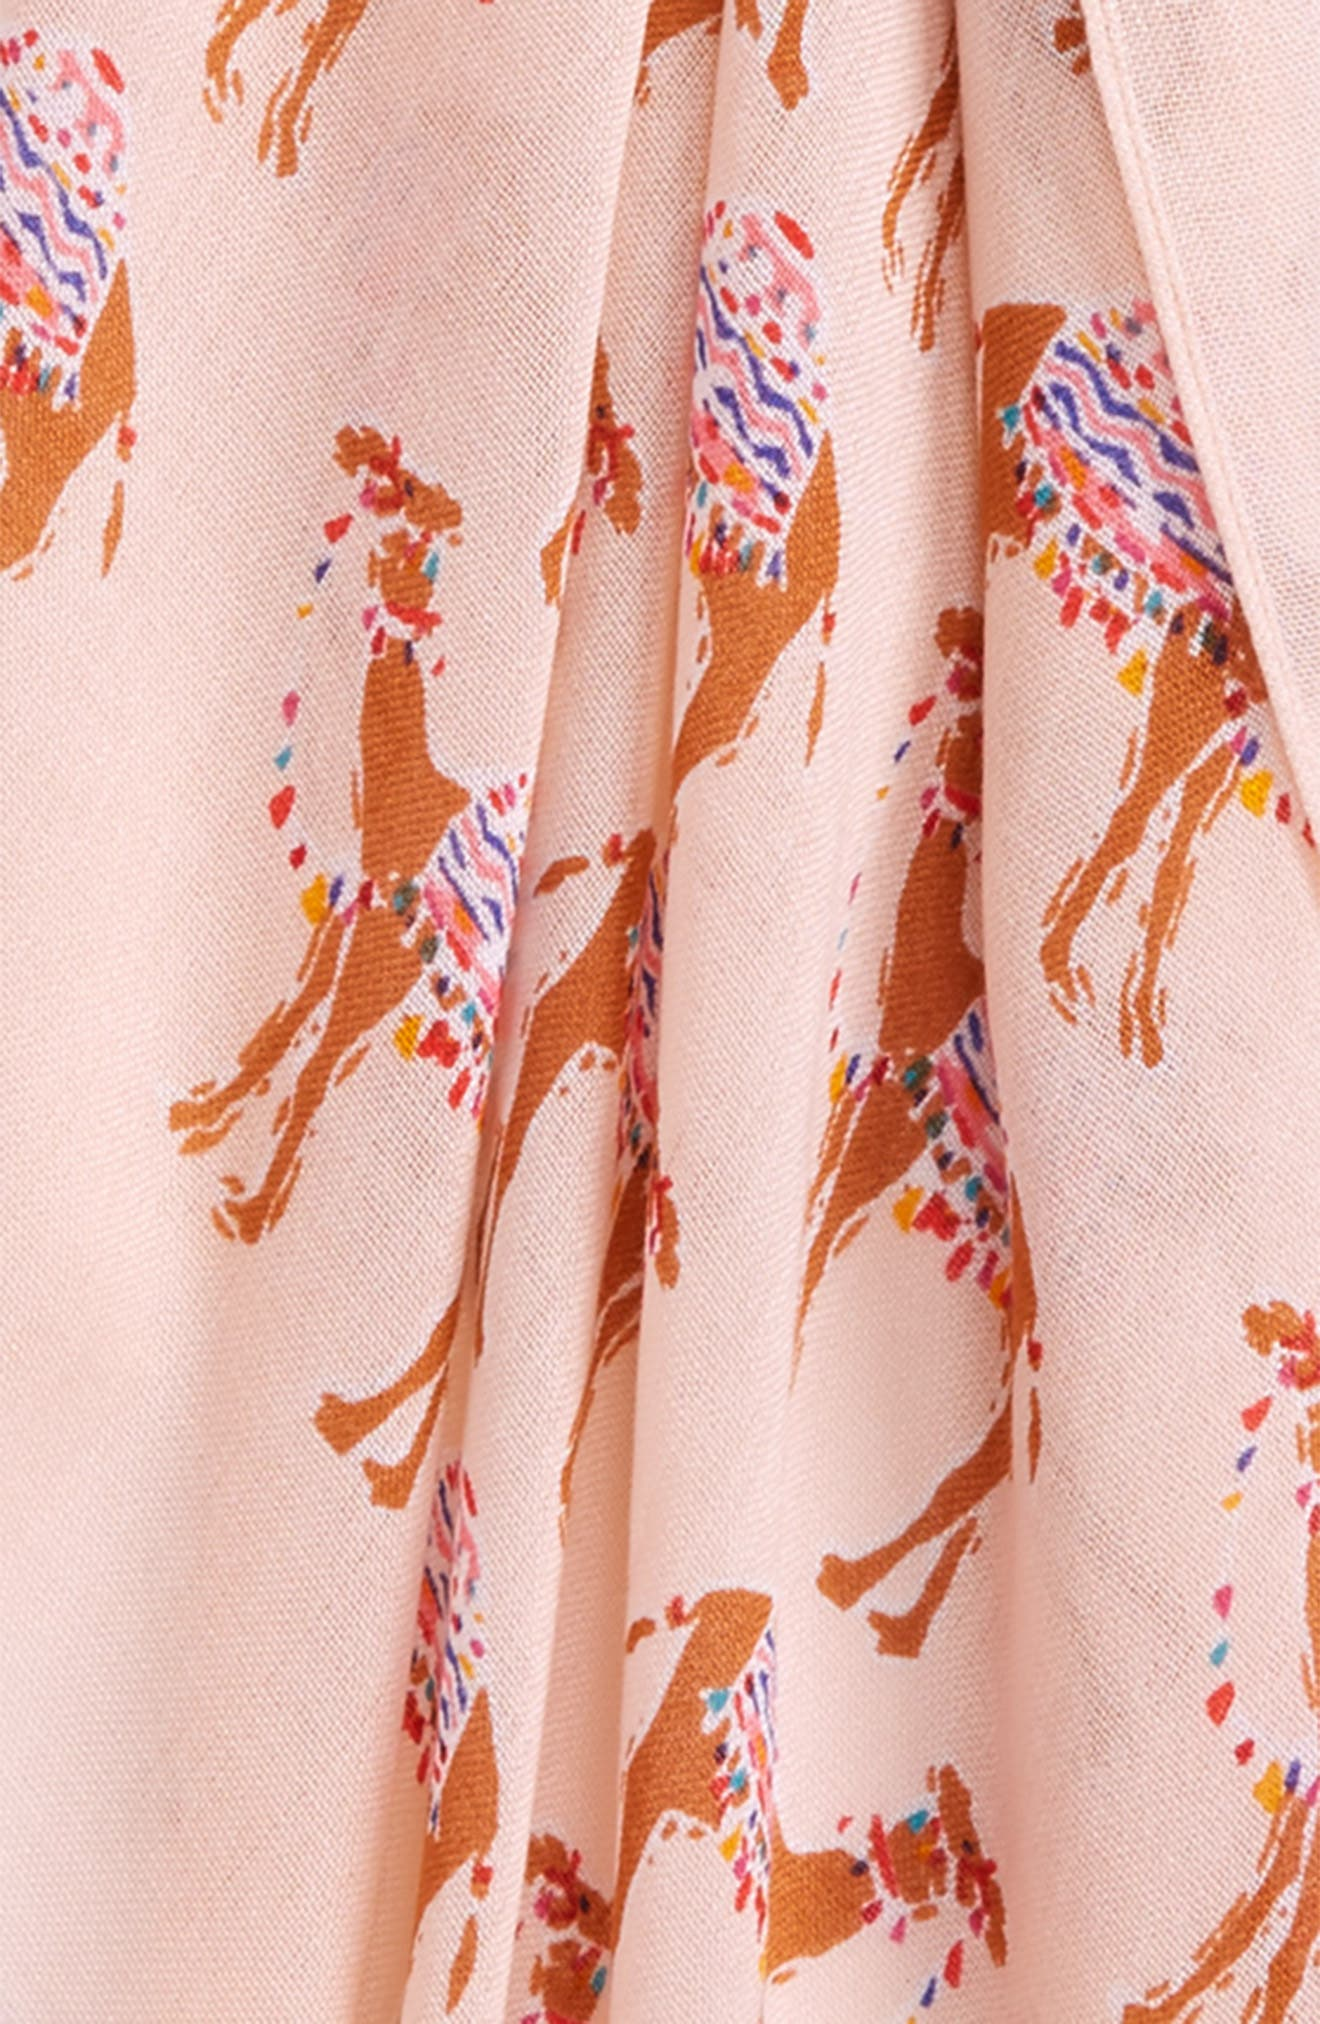 camel march scarf,                             Alternate thumbnail 3, color,                             666